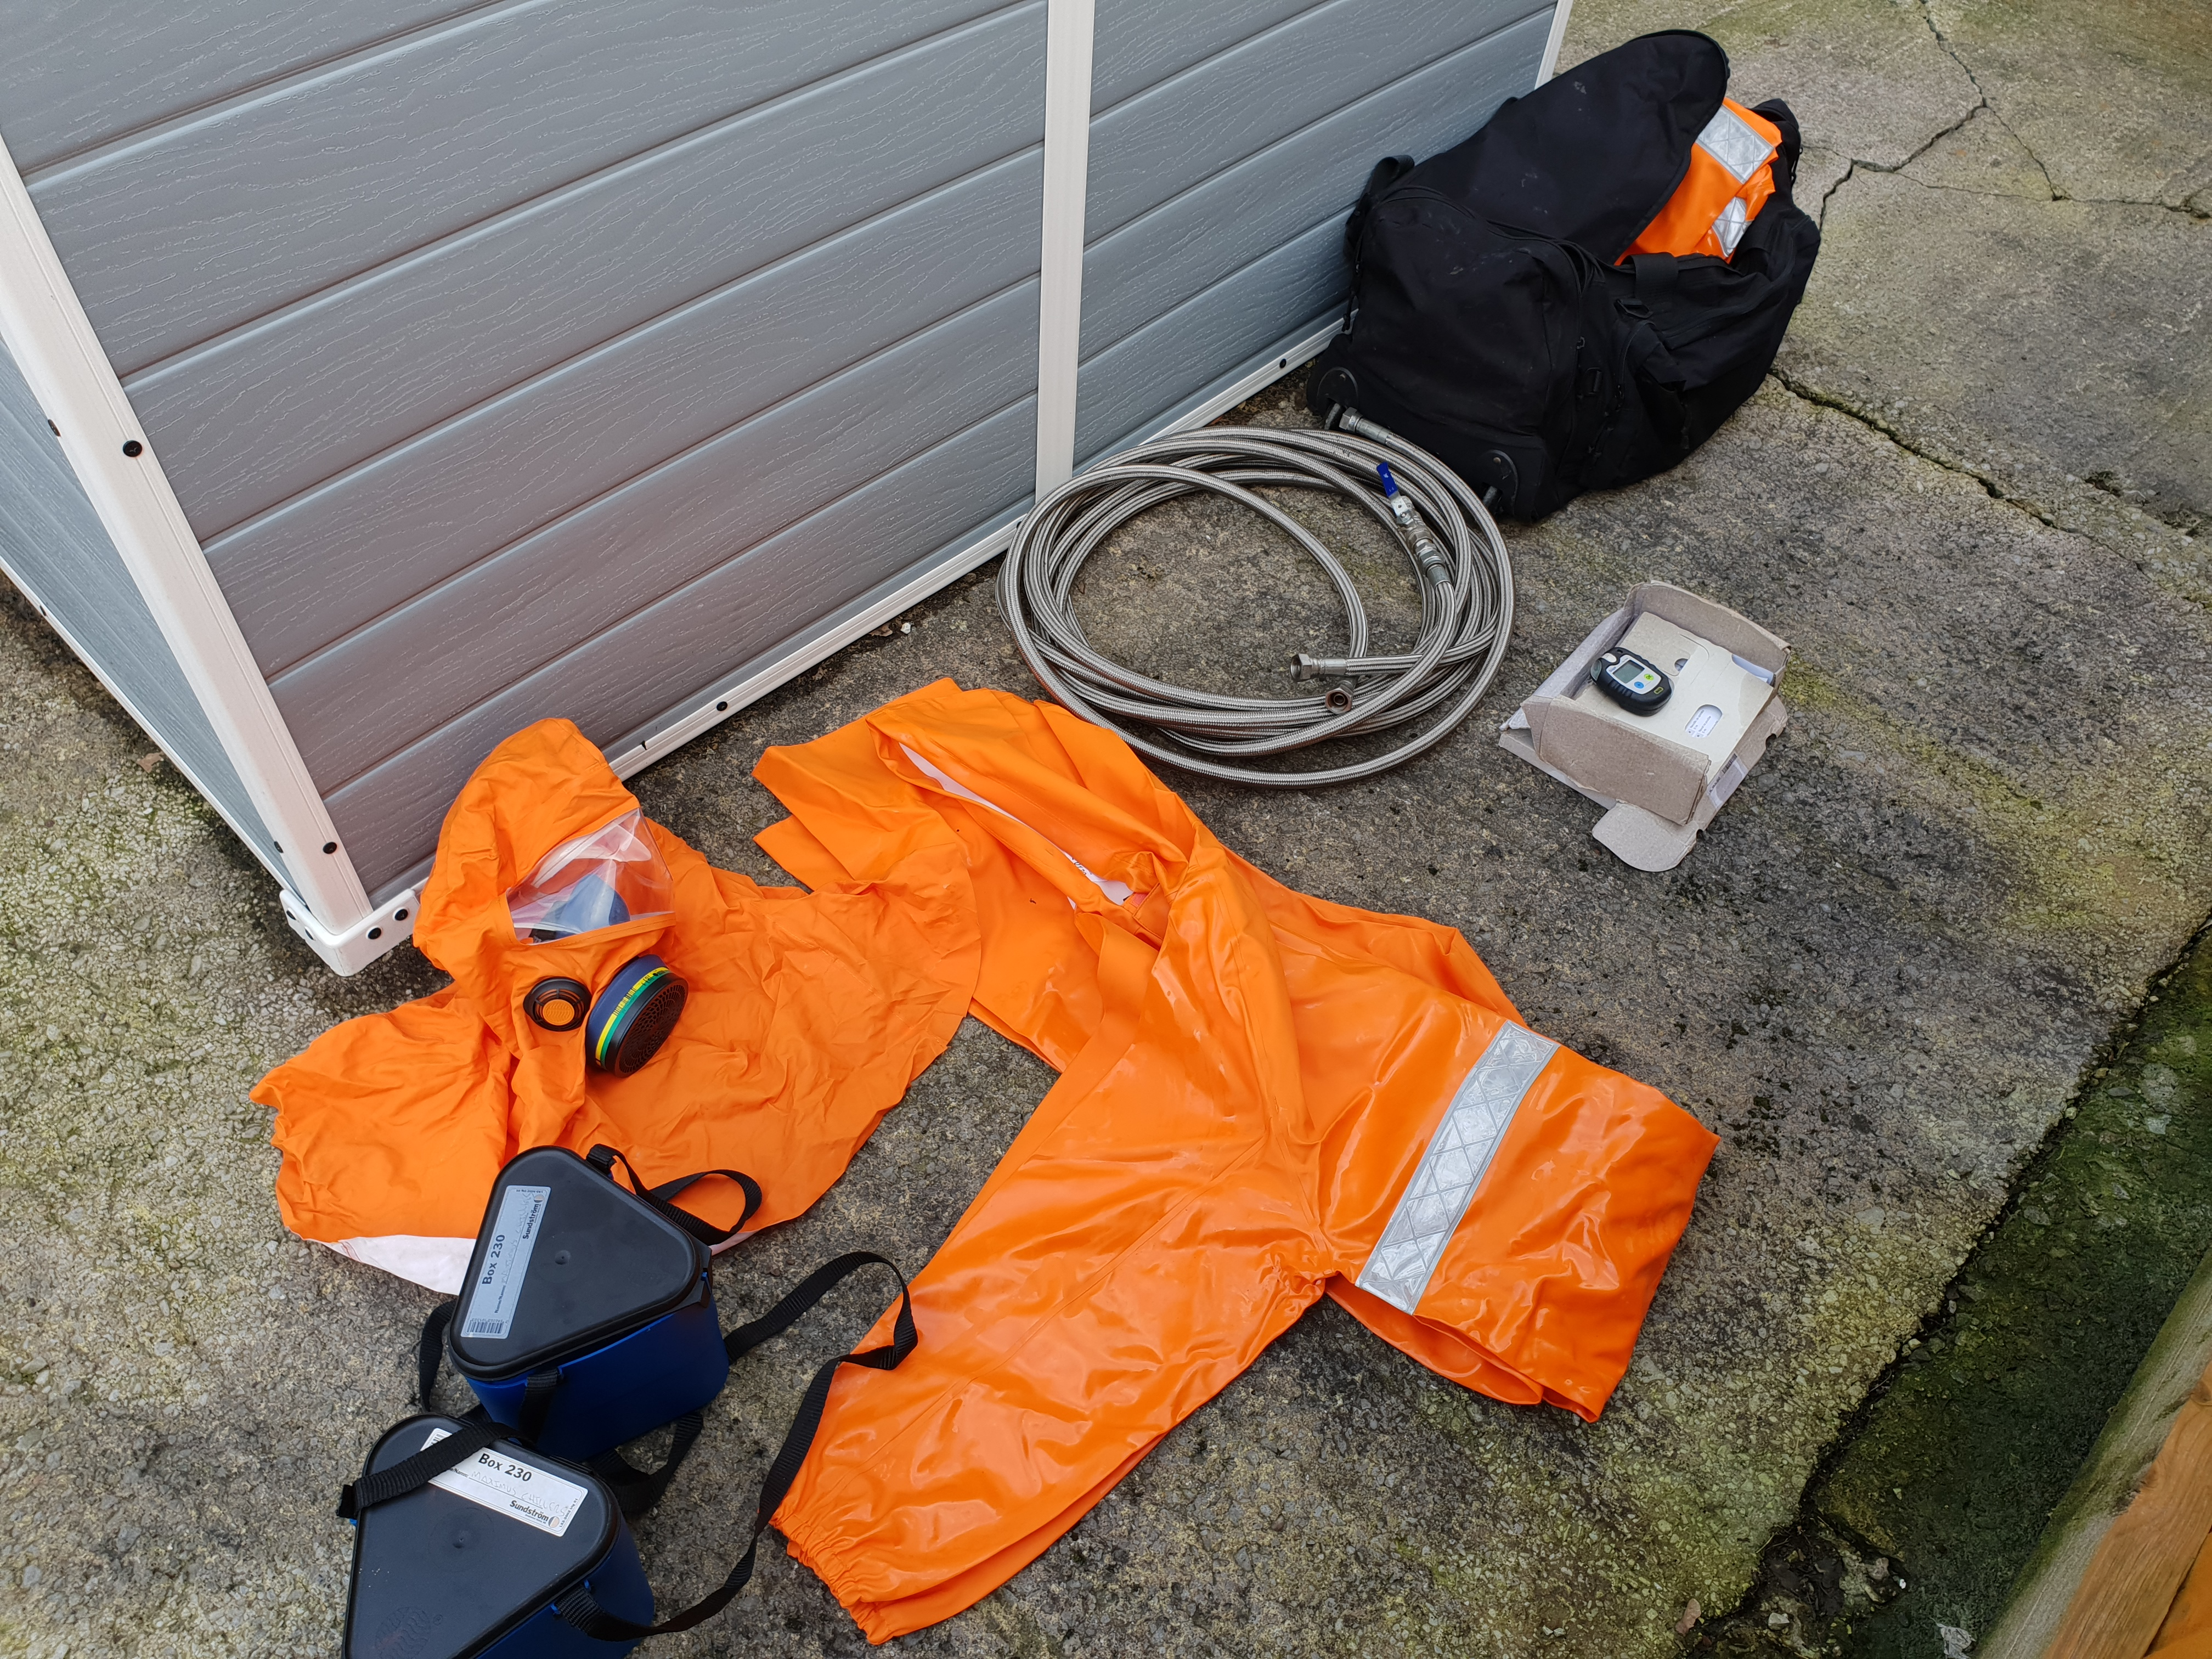 Orange chemical suit and charging hose for ammonia chiller service maintenance and repair